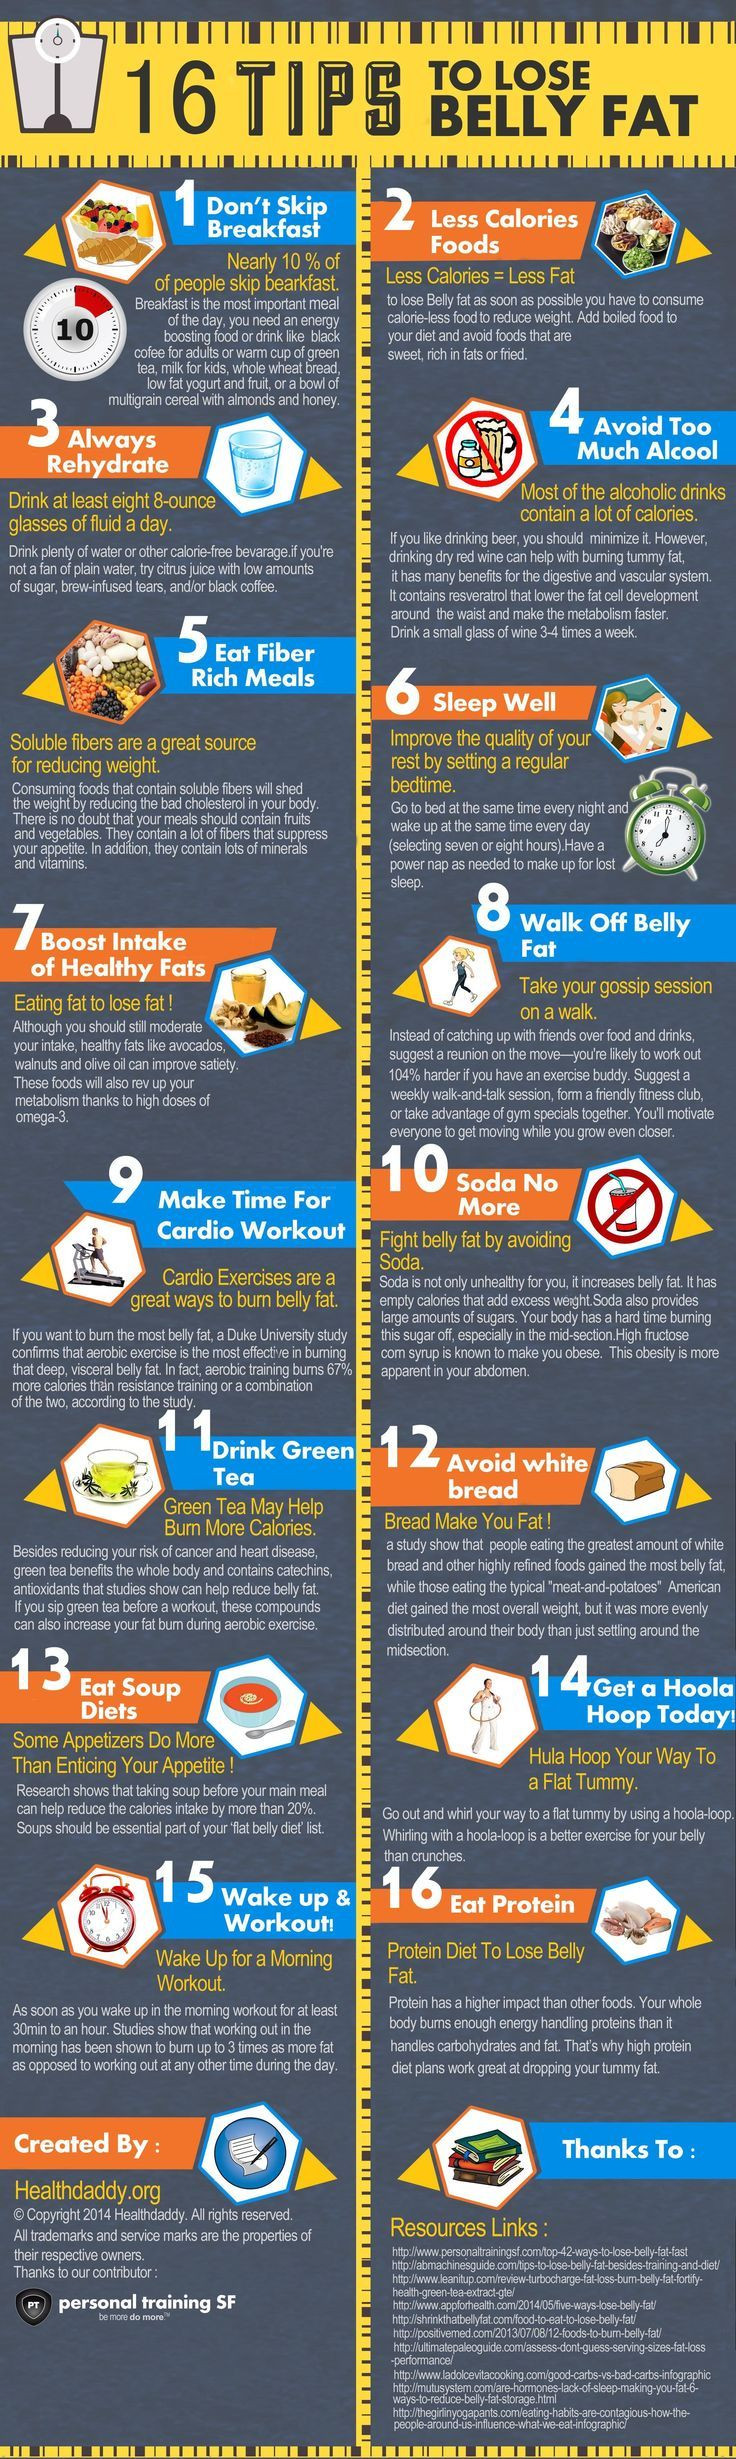 How To Lose Belly Fat Fast For Kids  16 Tips To Lose Belly Fat s and for